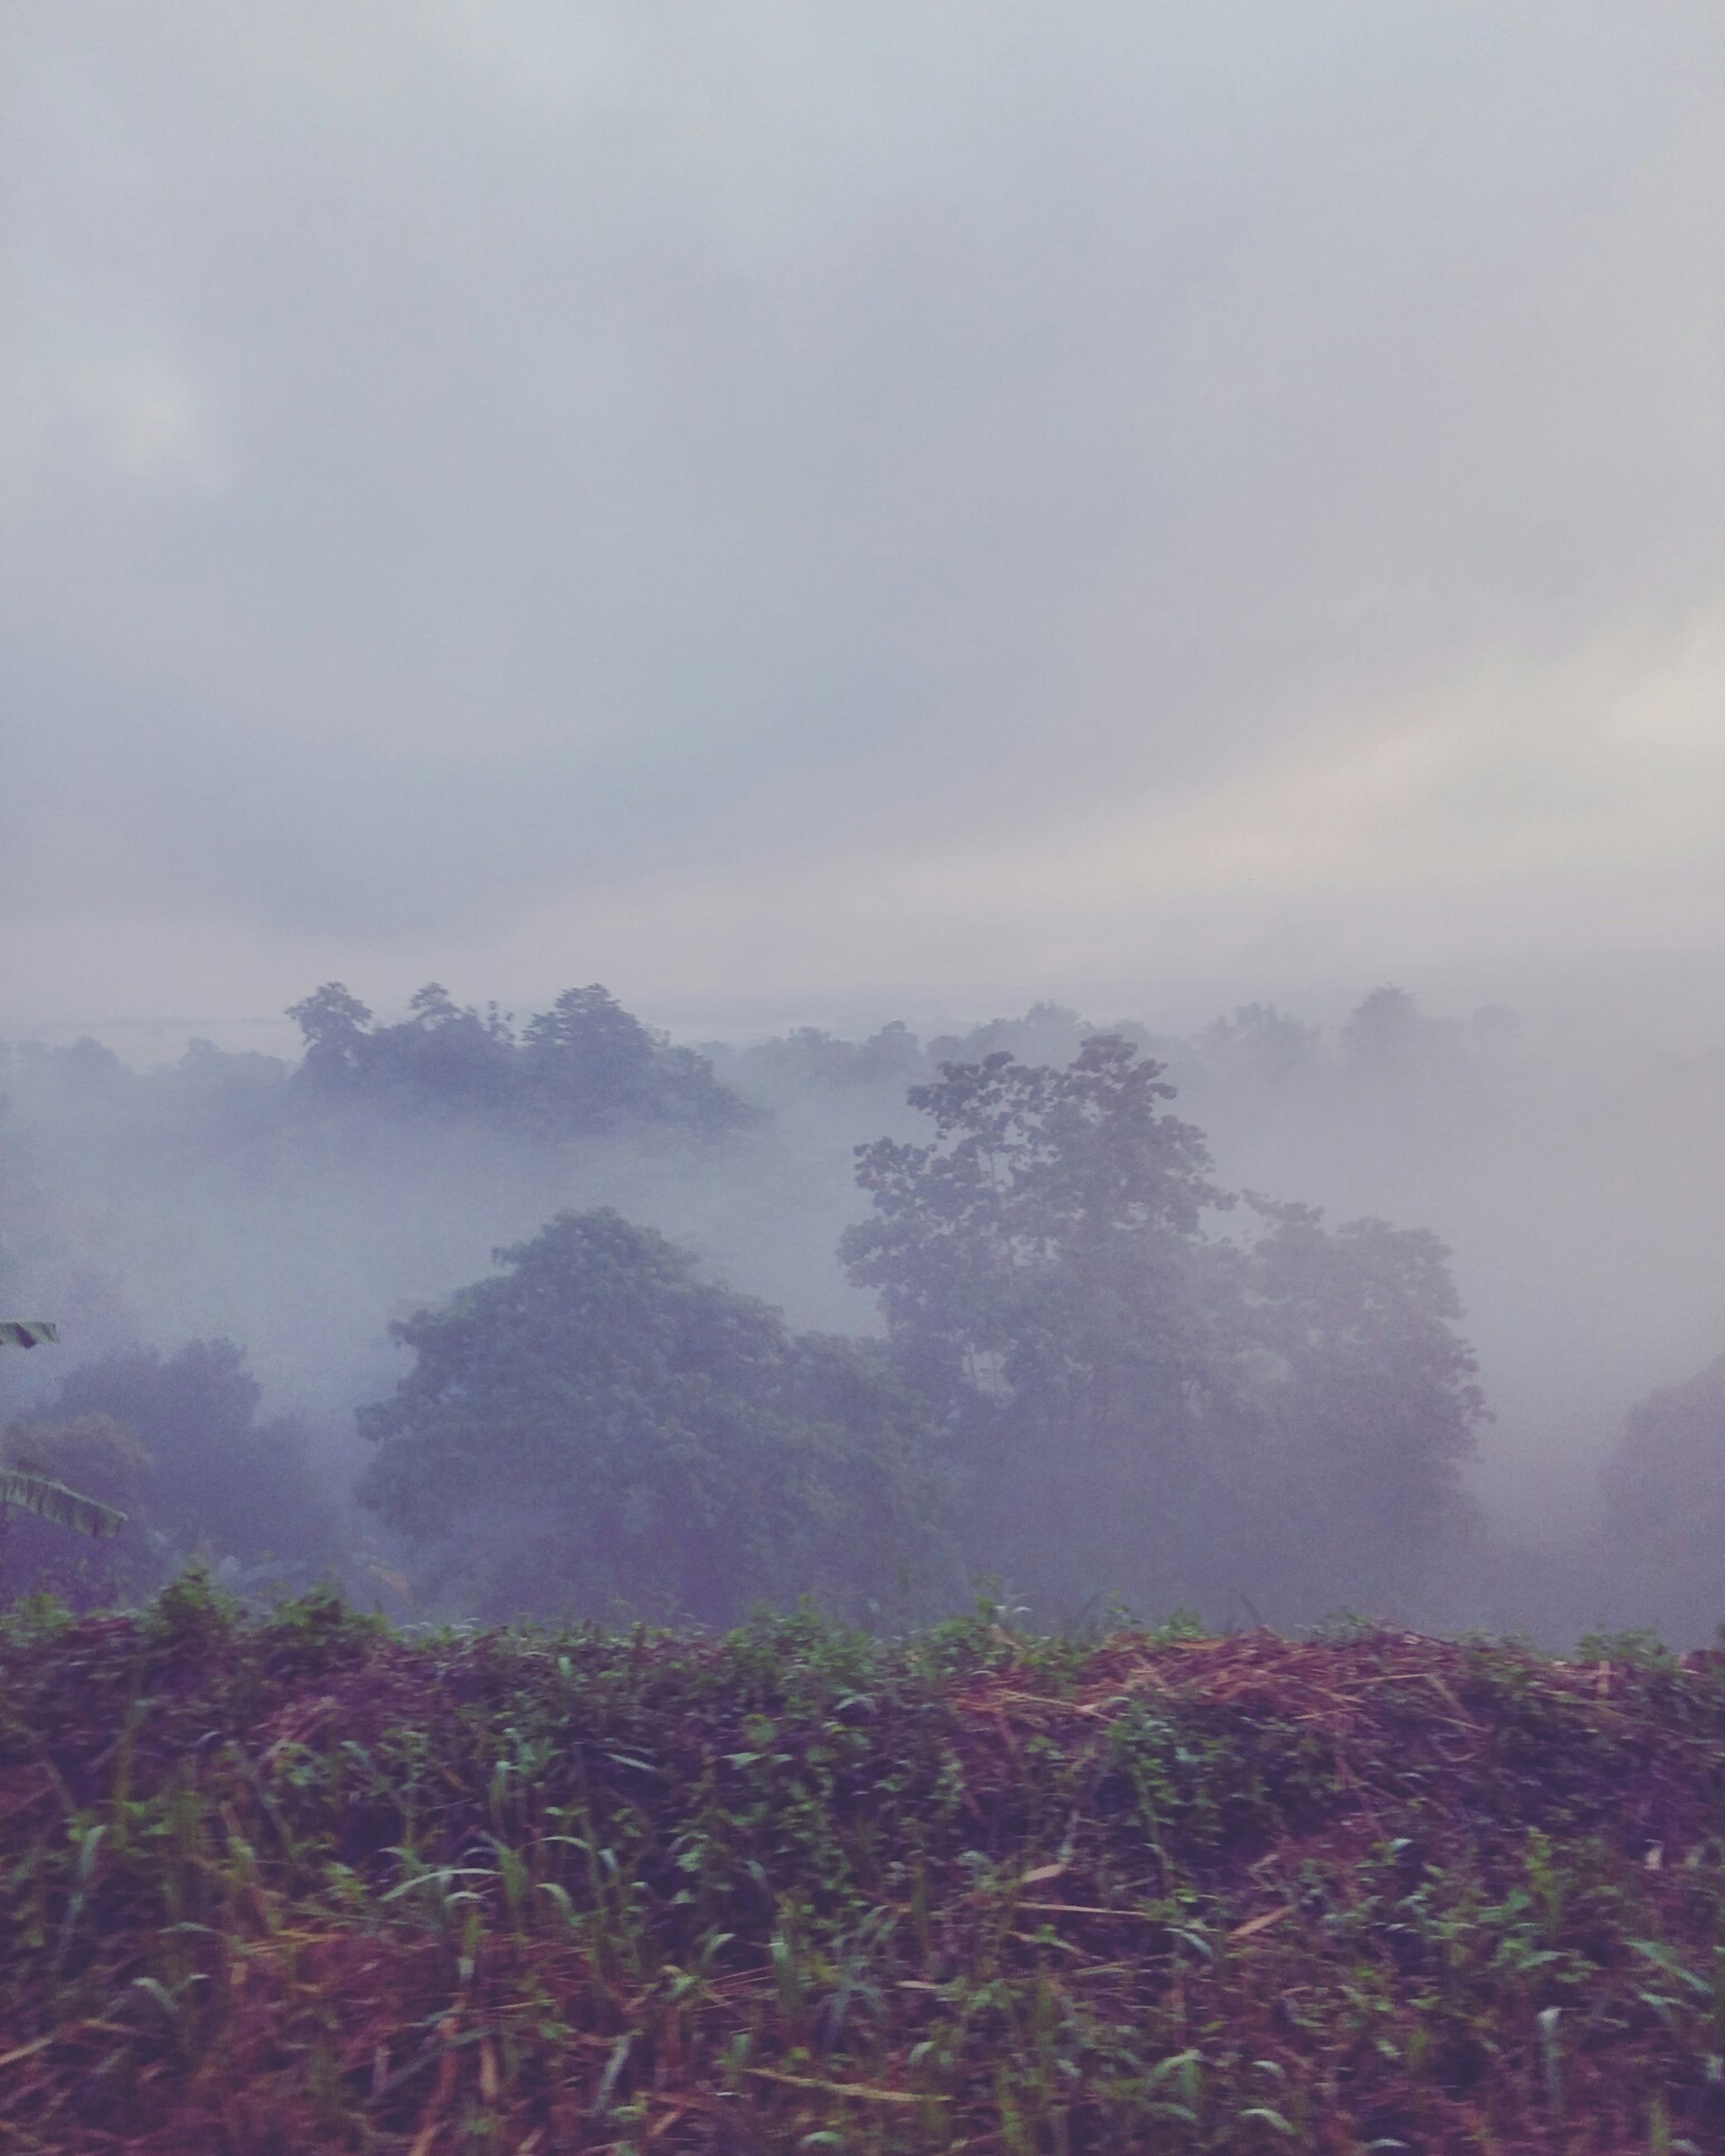 fog, foggy, tranquil scene, tranquility, scenics, beauty in nature, sky, weather, nature, mountain, landscape, non-urban scene, cloud - sky, idyllic, tree, growth, overcast, day, plant, remote